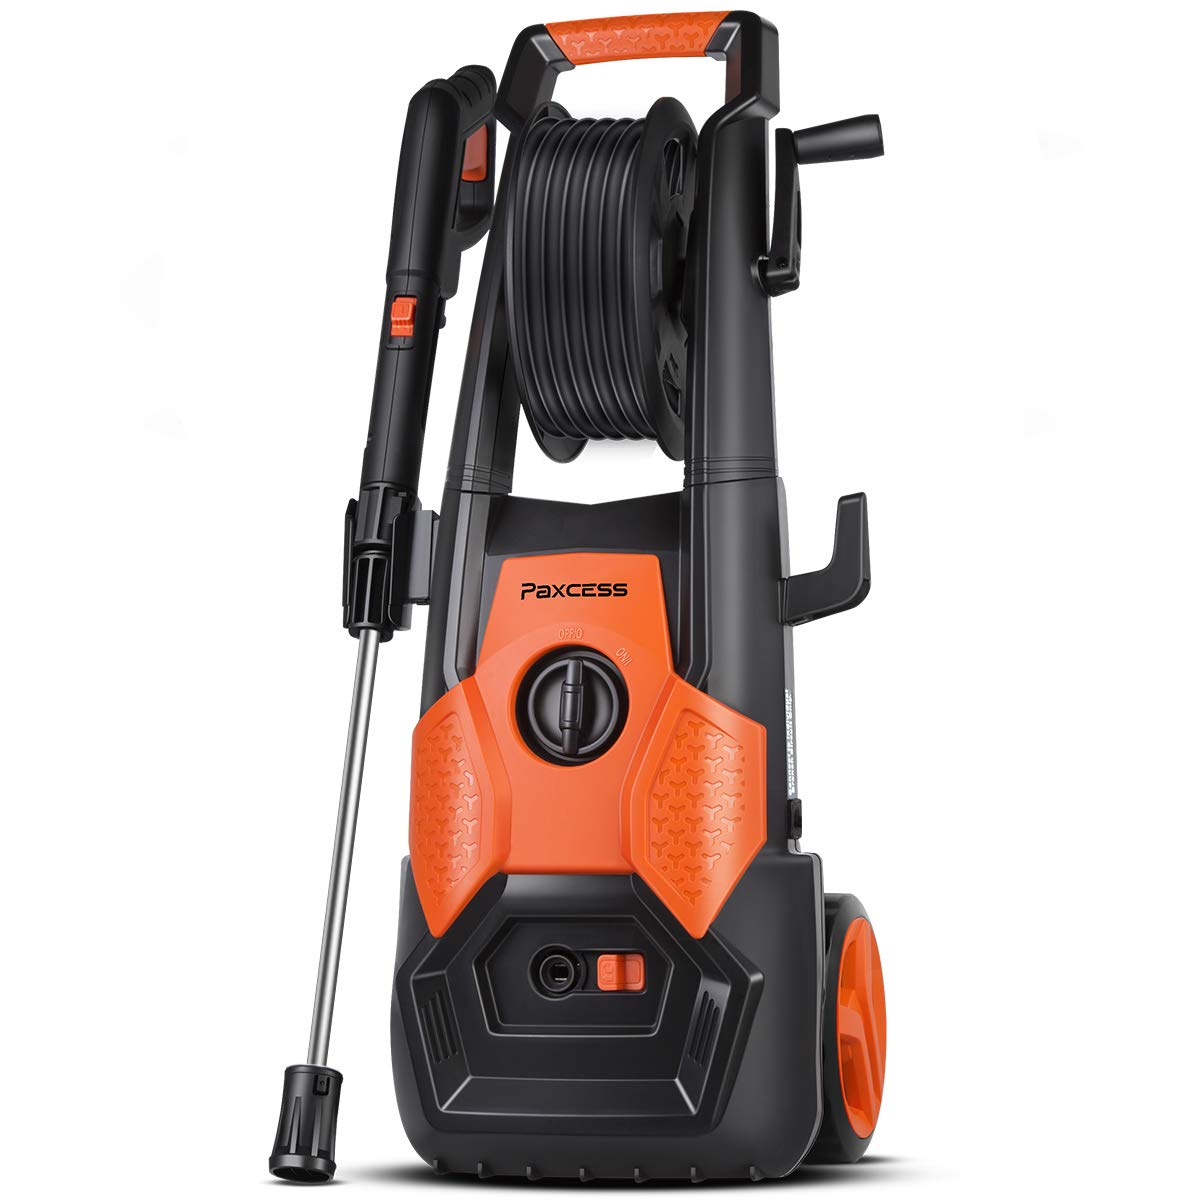 PAXCESS Pressure Electric Cleaner Adjustable